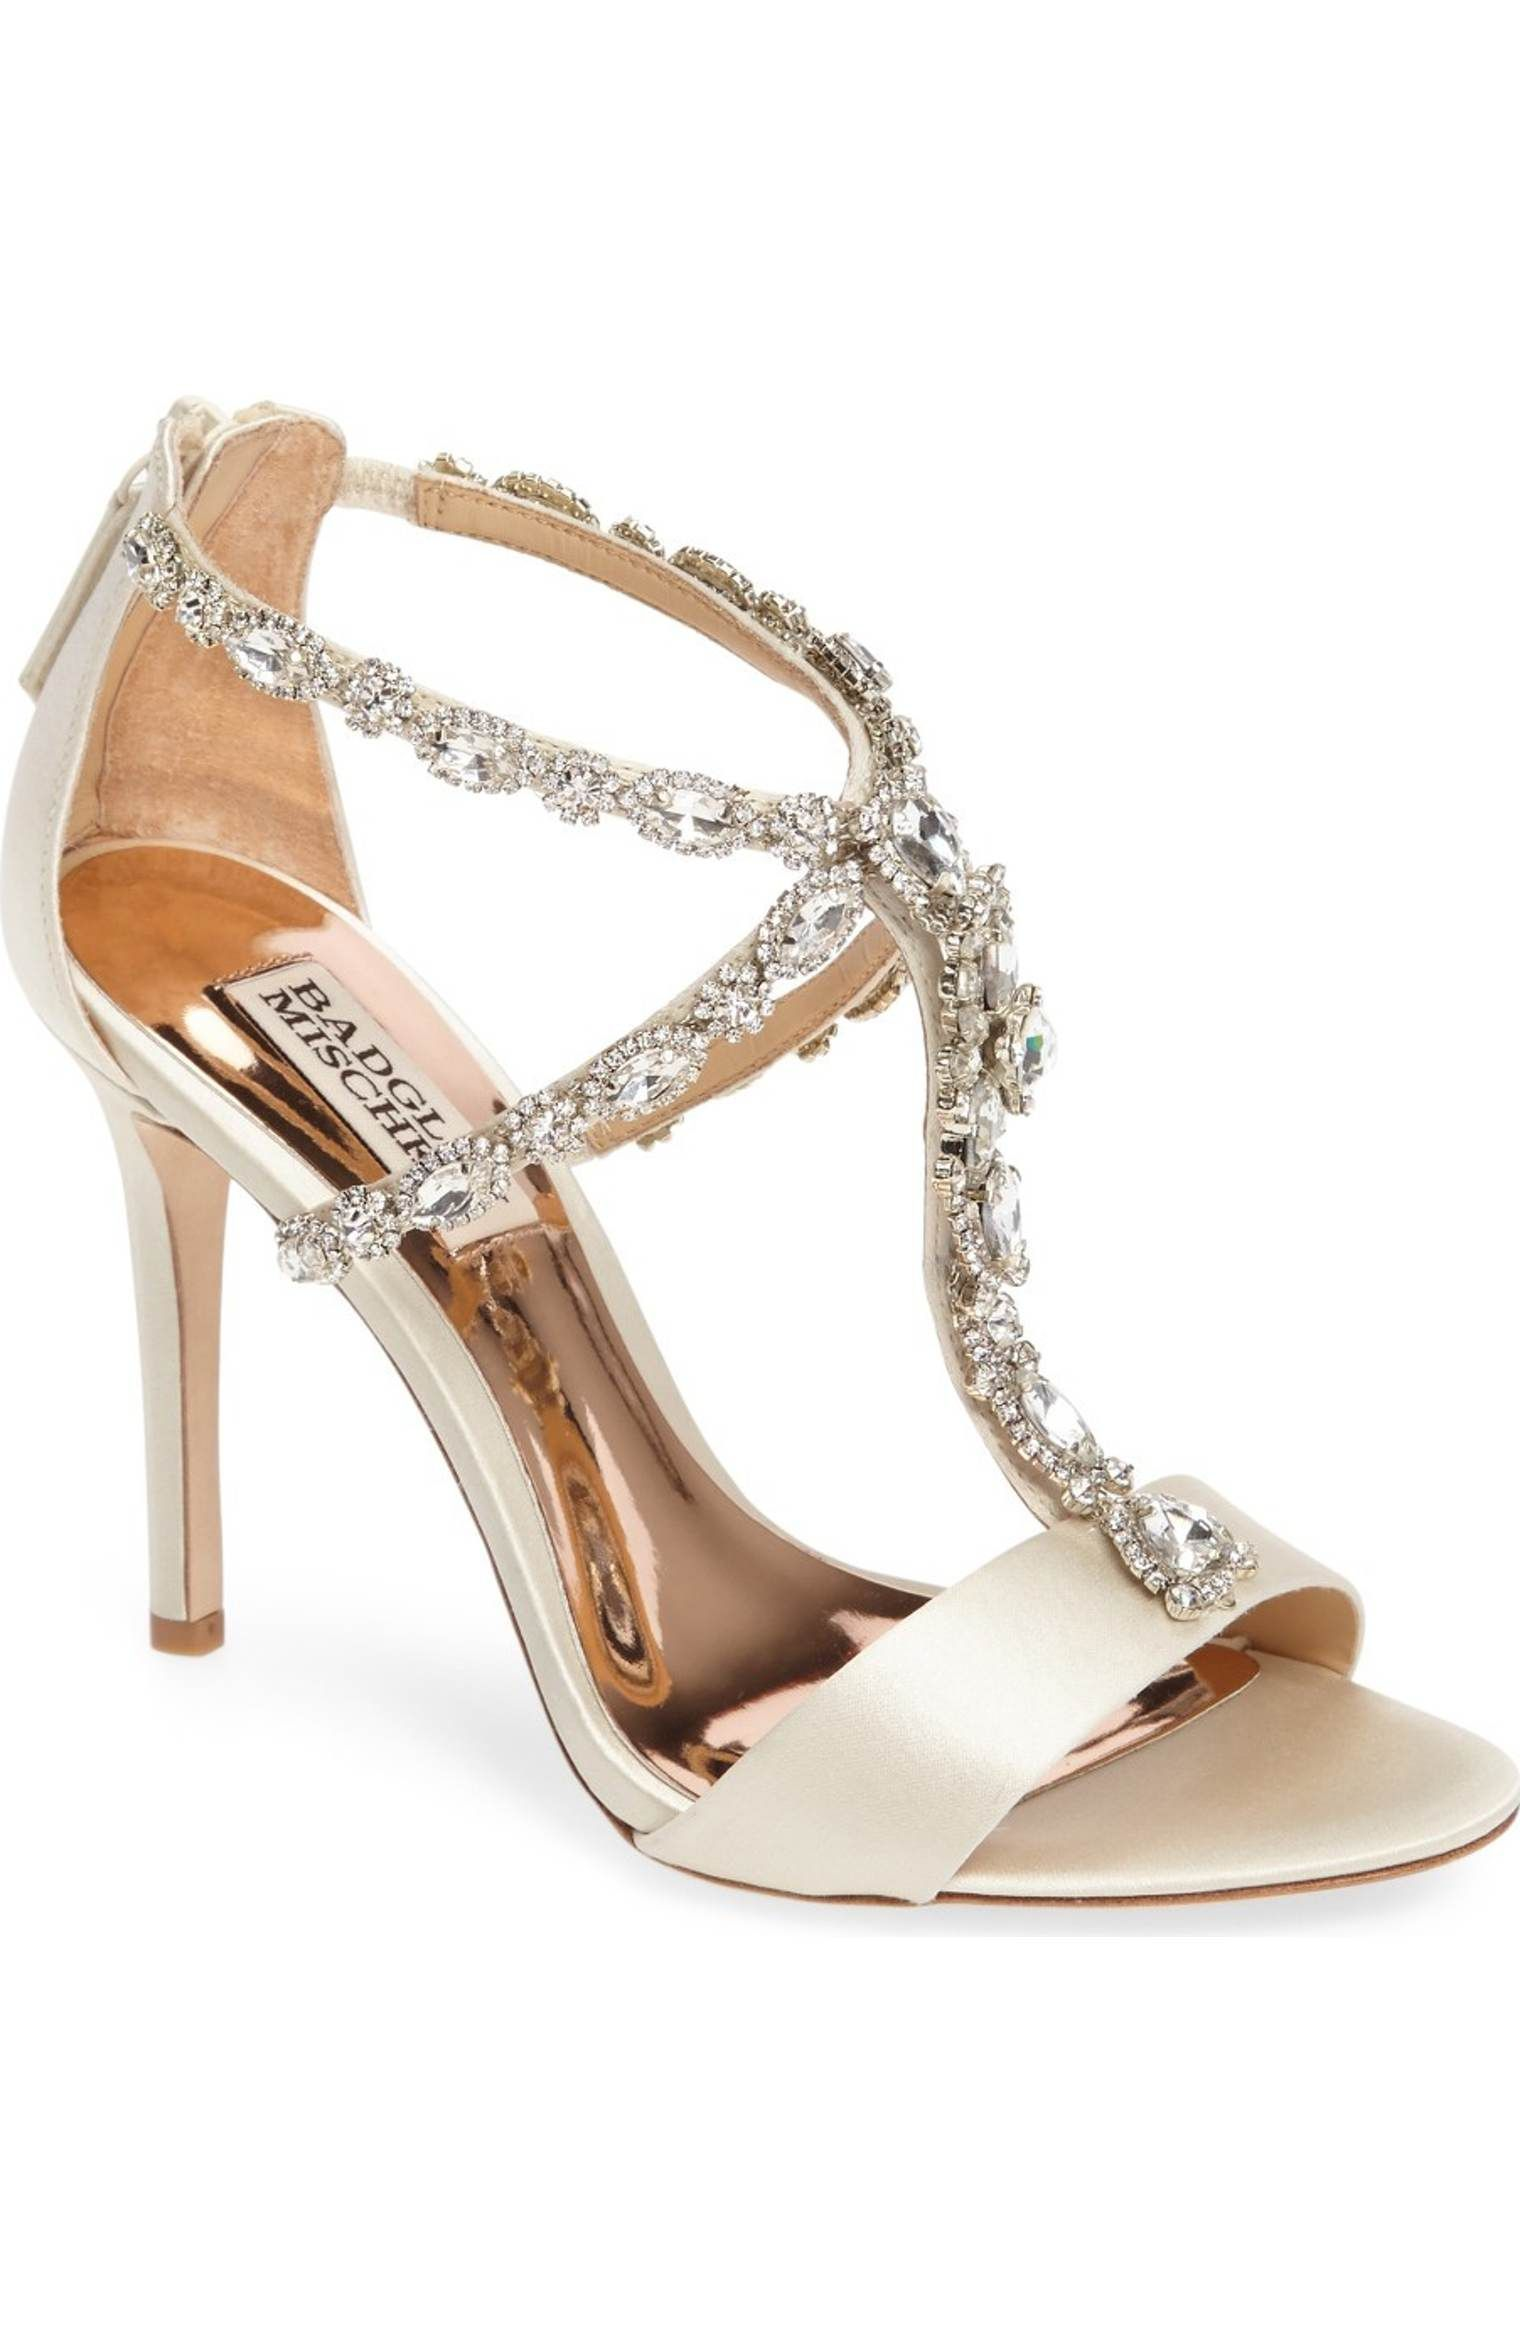 2ad74b96892 Main Image - Badgley Mischka Georgia Crystal Embellished T-Strap Sandal ( Women)